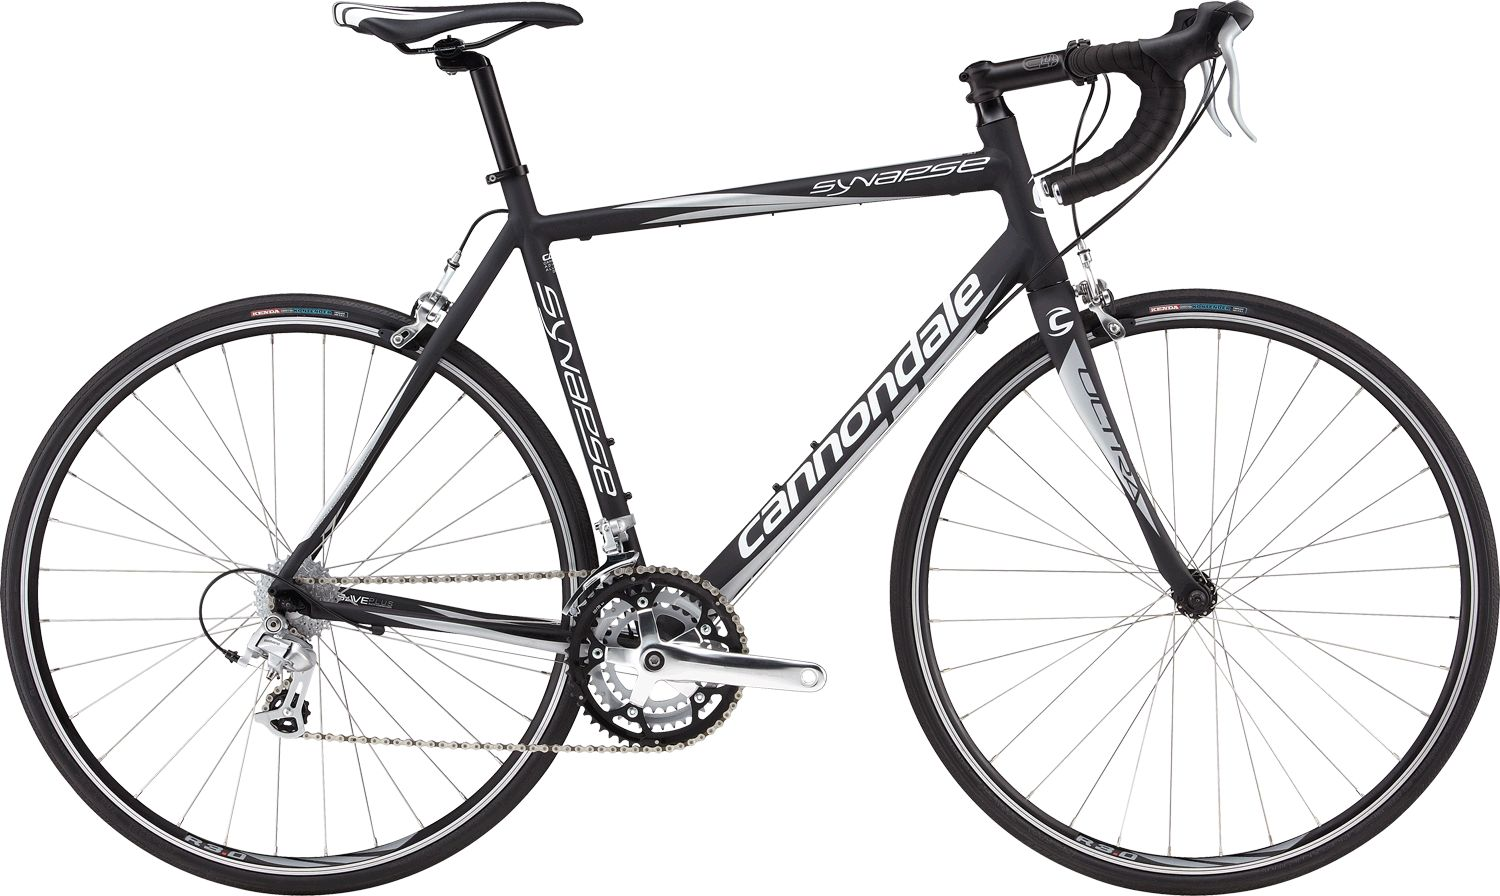 dadc706a647 Cannondale SYNAPSE 8 2300 2013 review - The Bike List